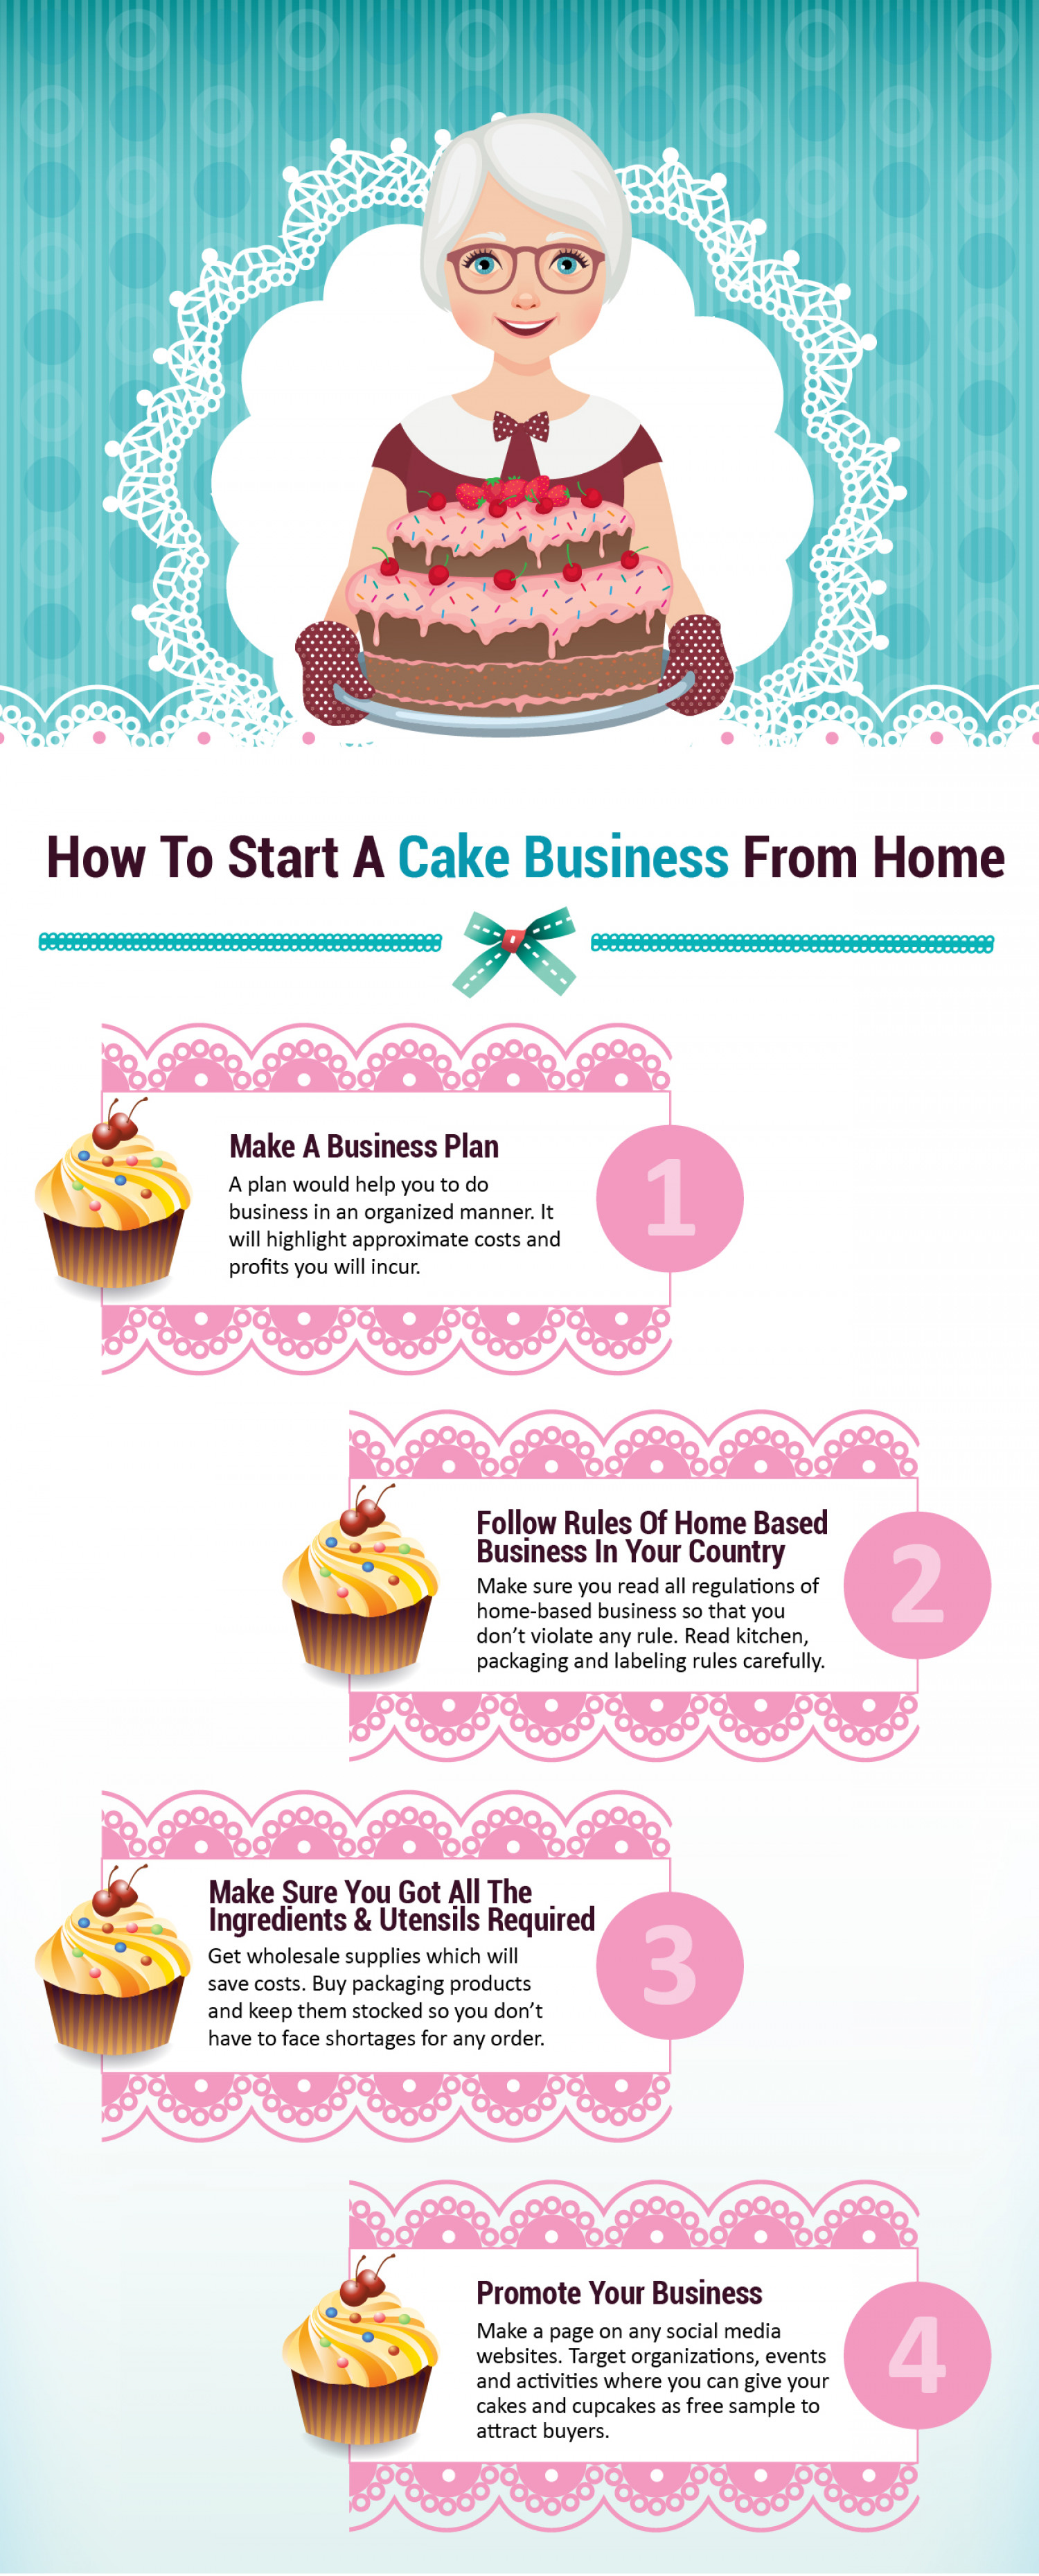 How To Set Up A Cake Making Business From Home